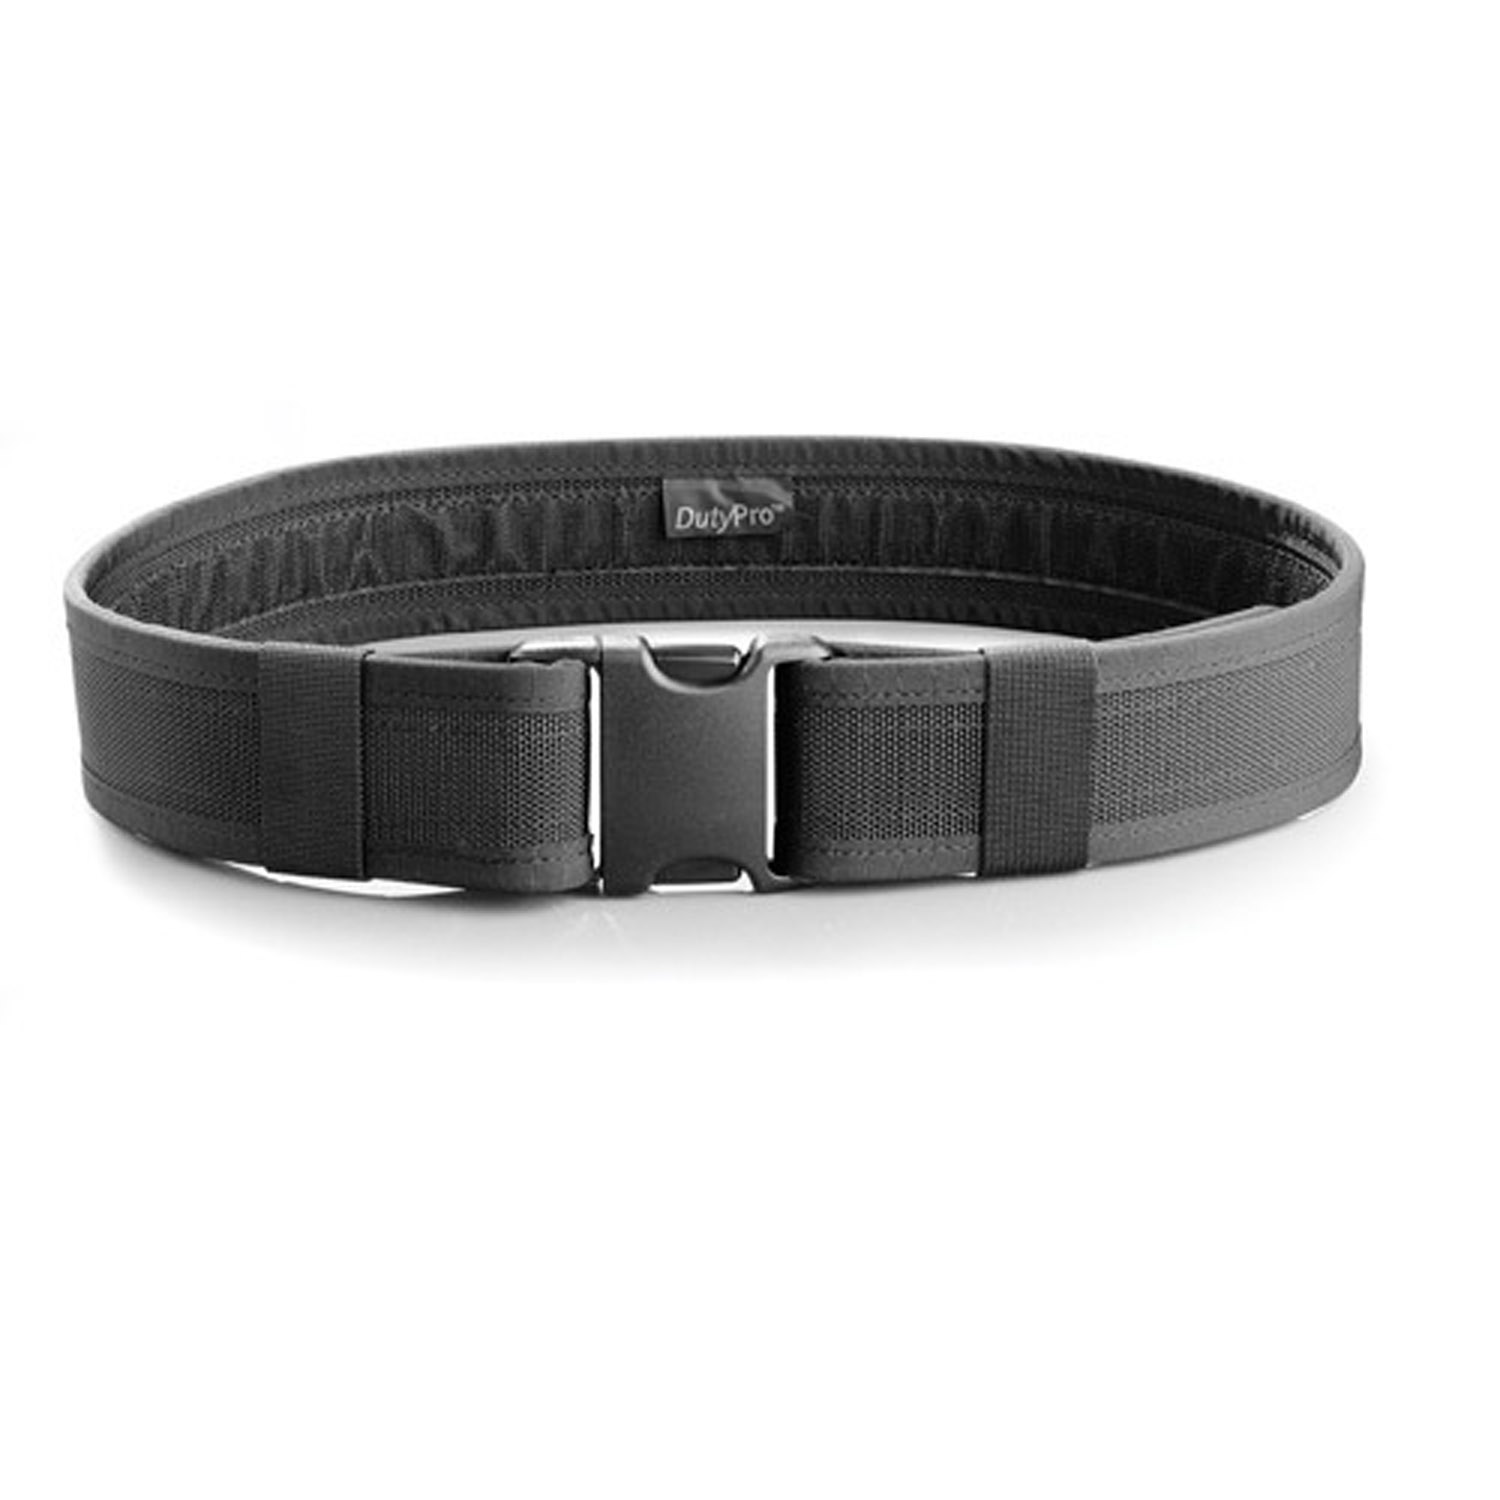 DutyPro Adjustable Sam Browne Belt